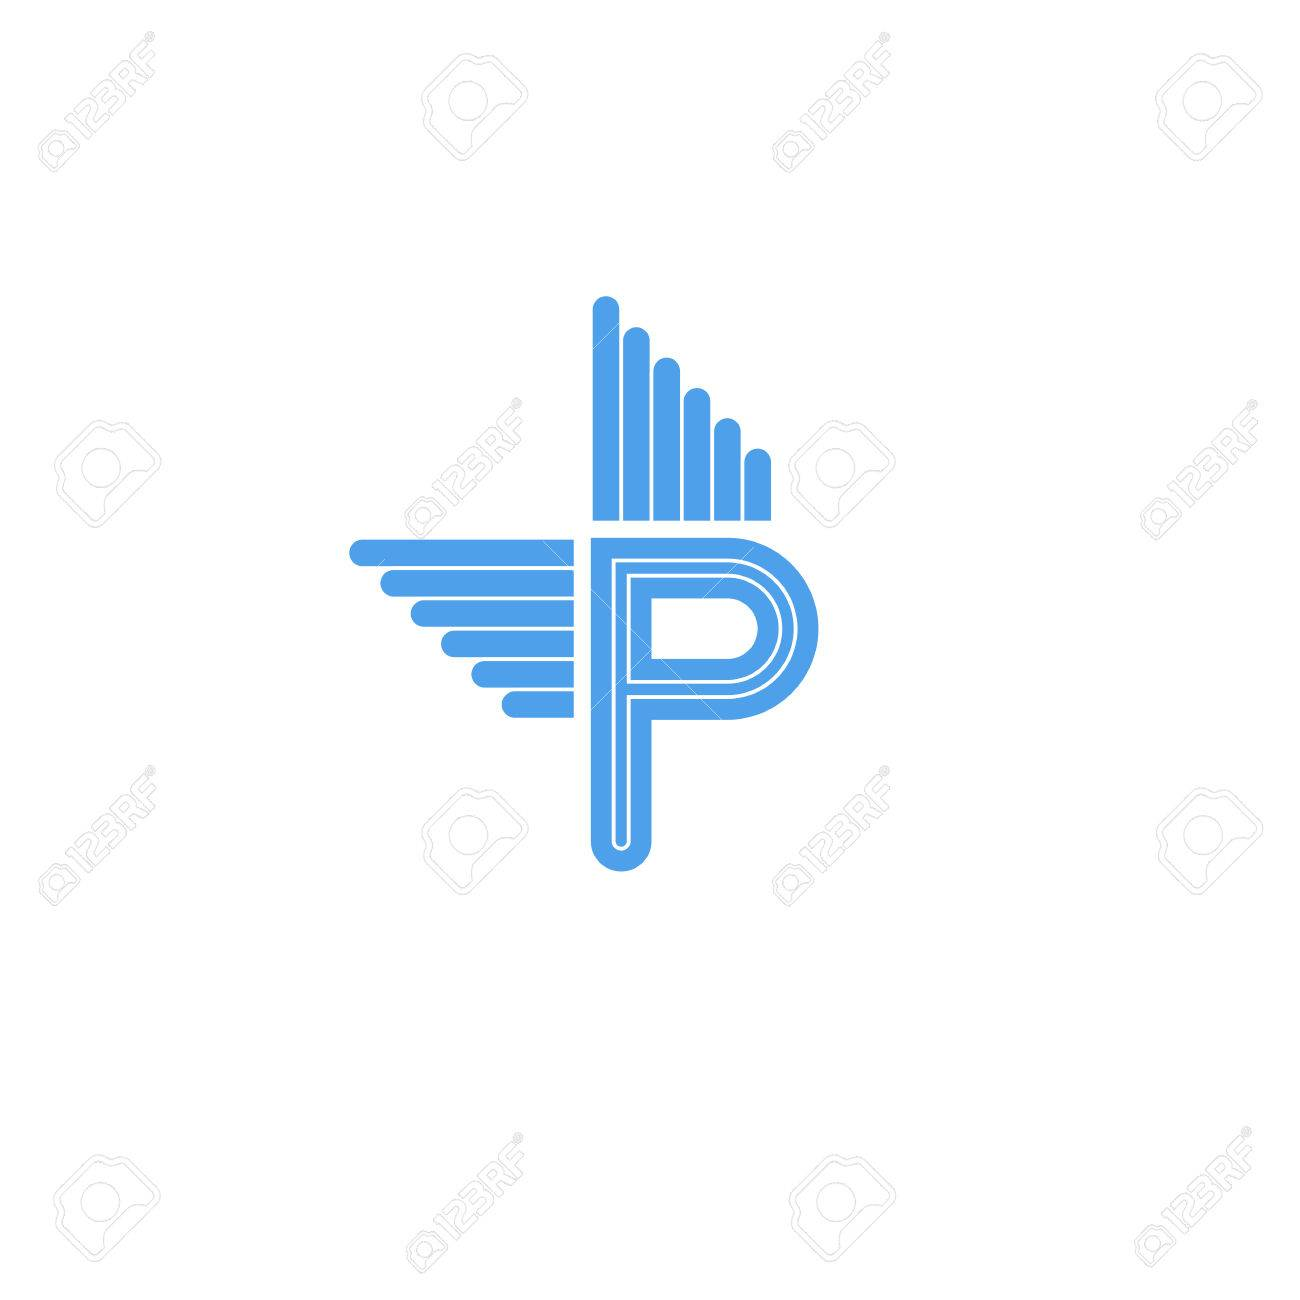 Letter P Logo With Blue Wings Flying Concept Symbol For Business